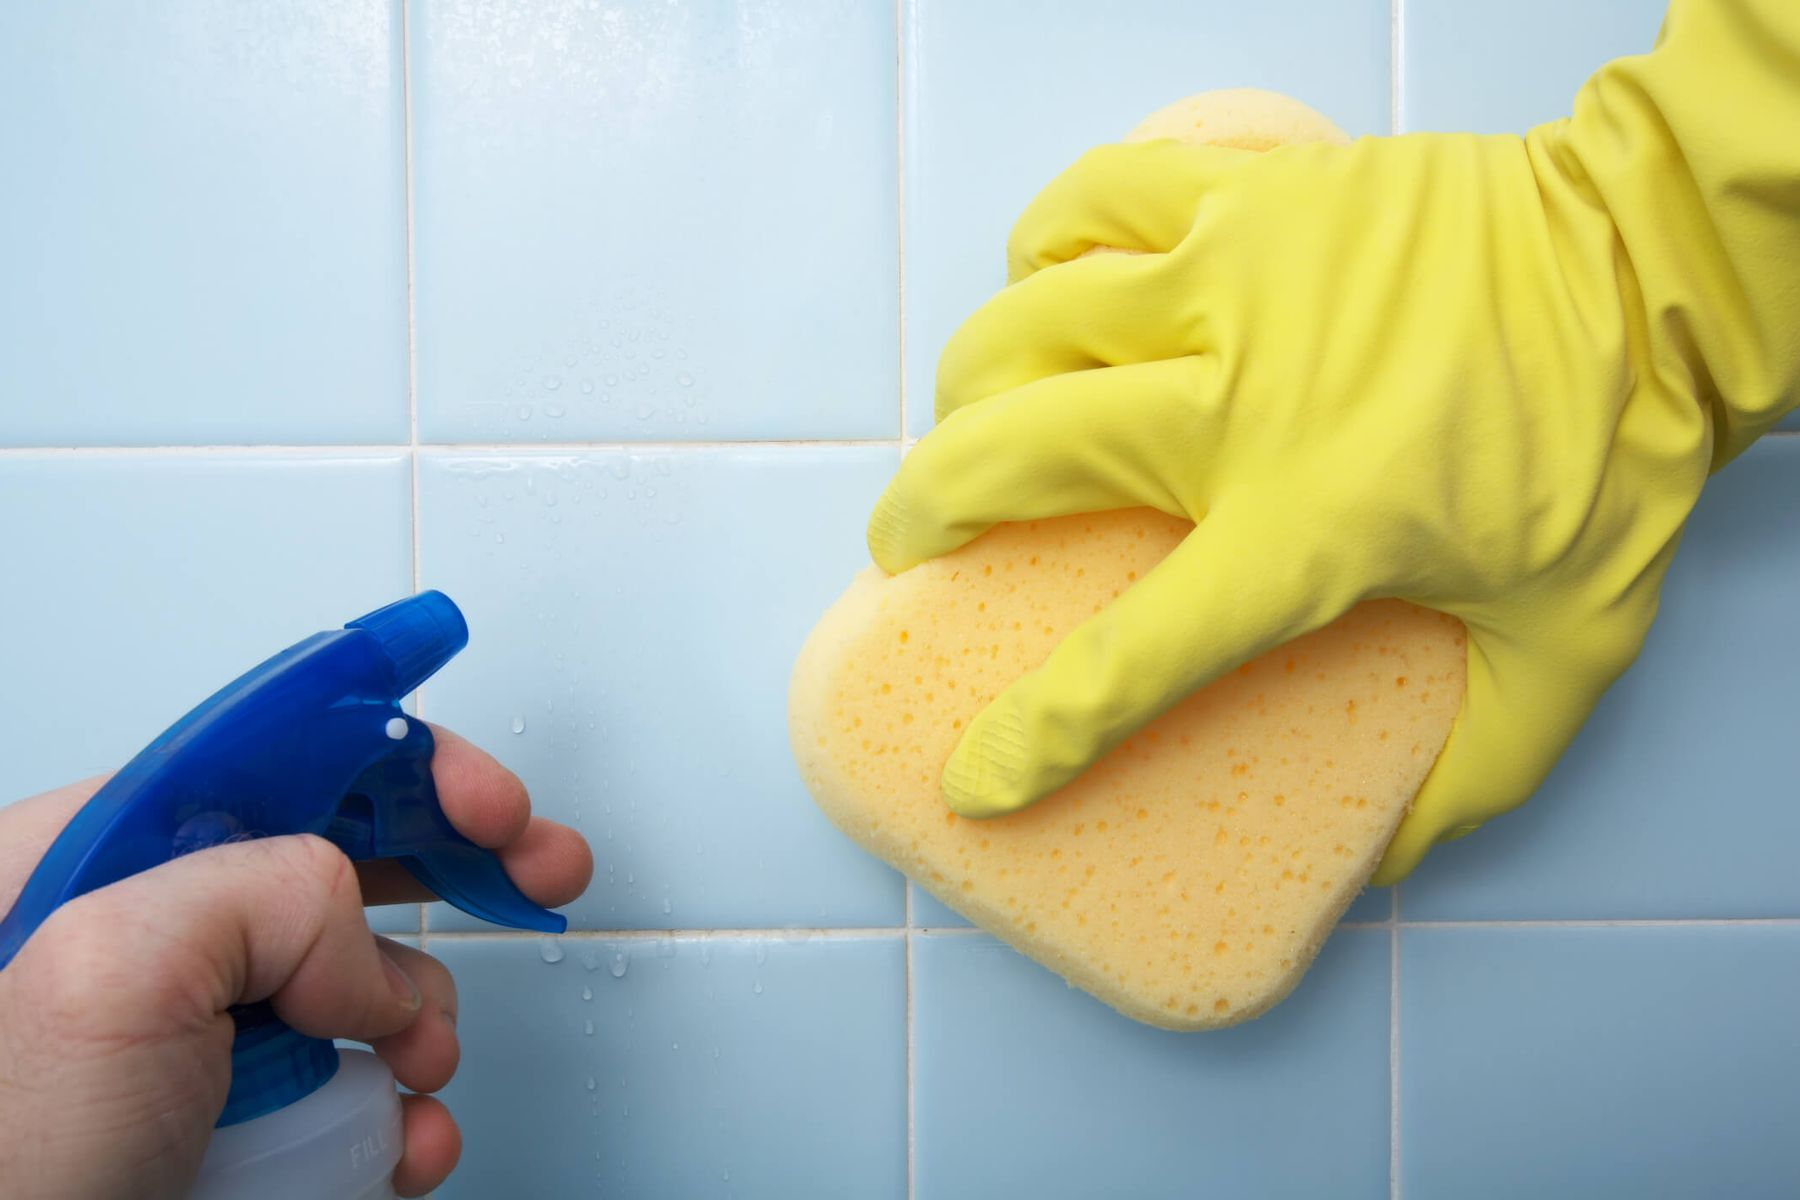 Does bleach kill bacteria, viruses, and mold